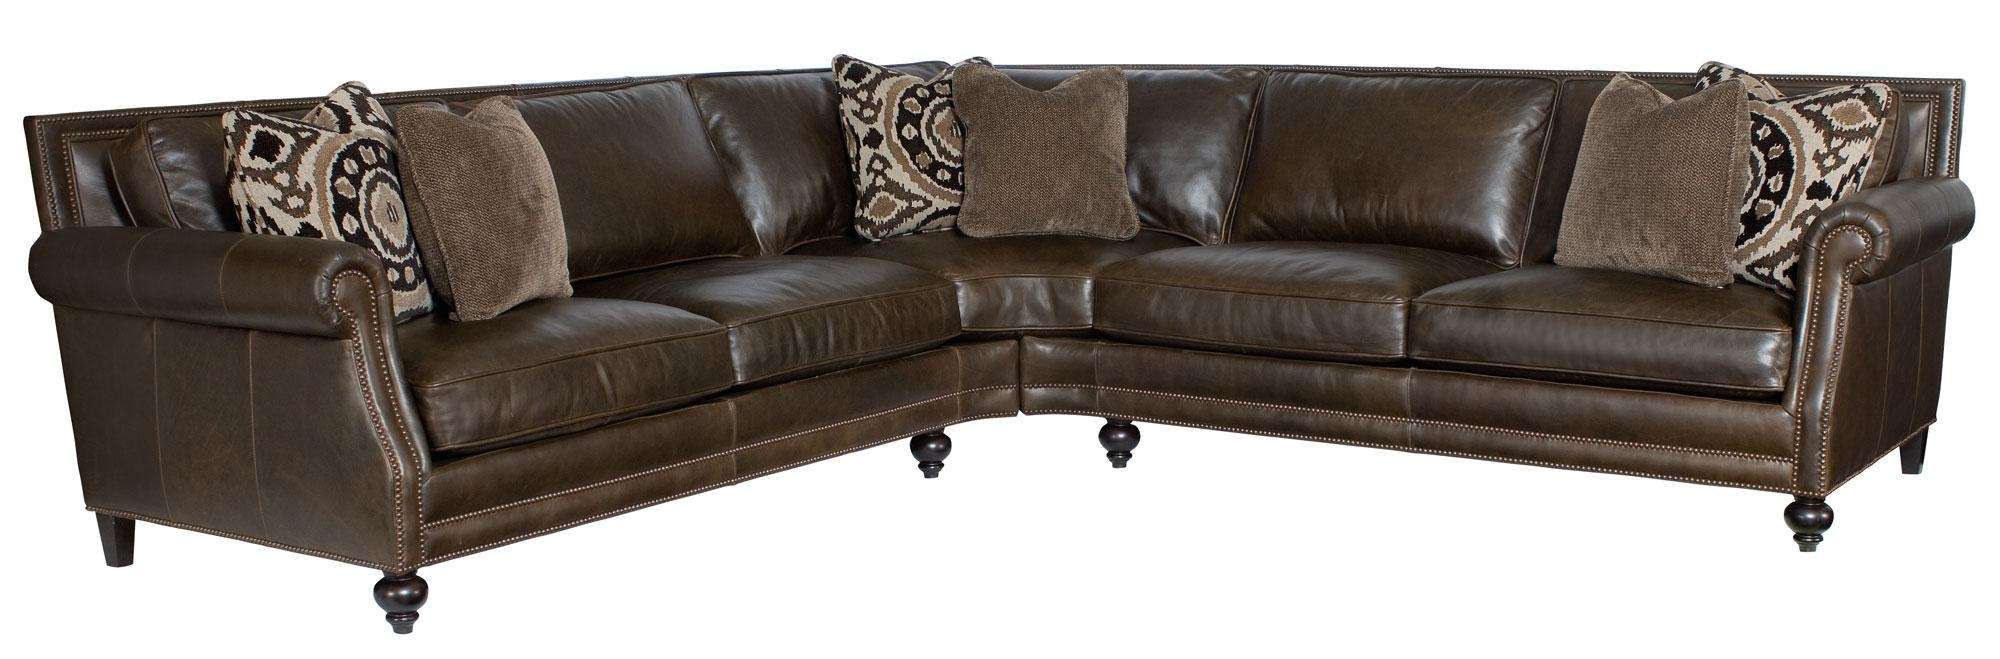 Sofas Center : 54 Fearsome Bernhardt Leather Sofa Image Ideas Regarding Bernhardt Brae Sofas (View 6 of 20)